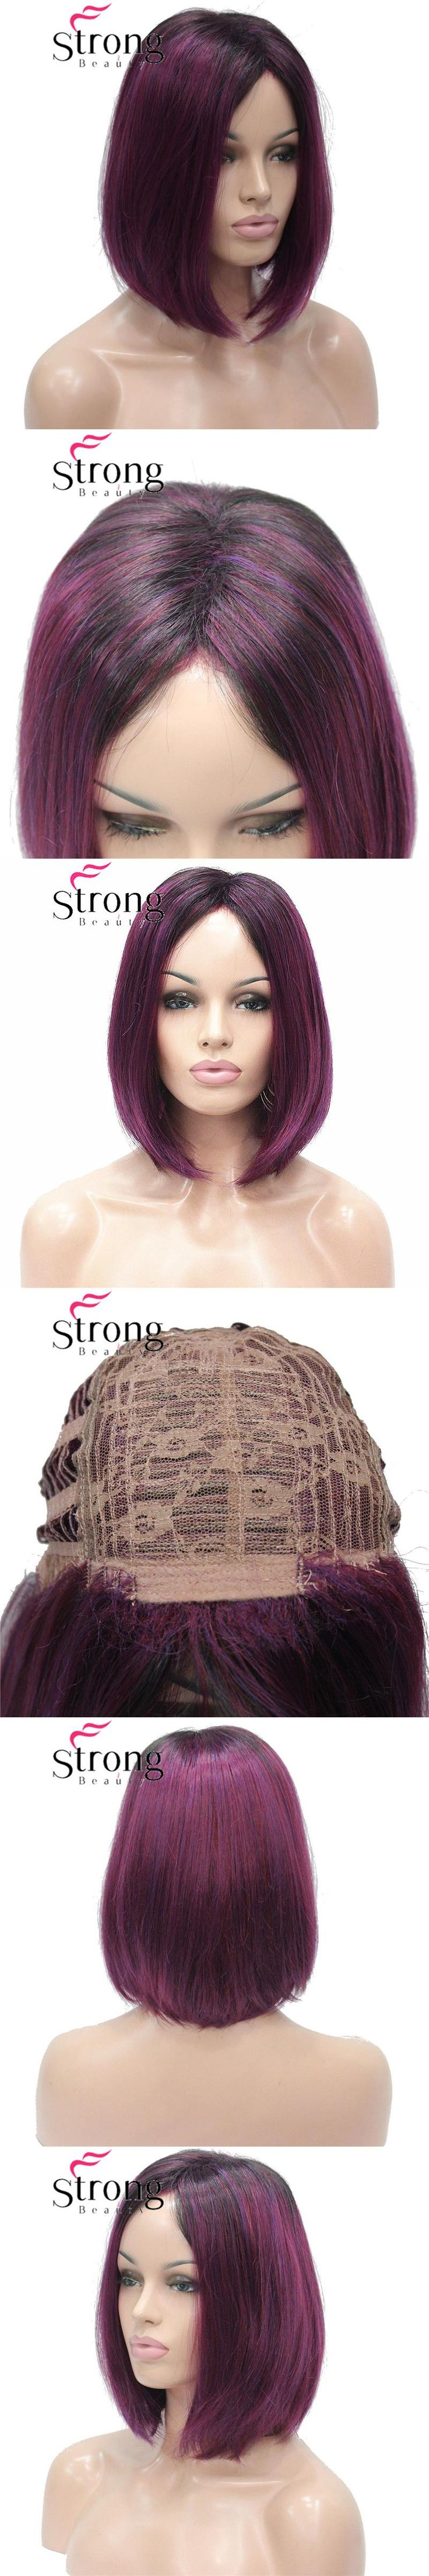 StrongBeauty Angled Bob Wig Ombre Deep Purple Dark Root Midnight Berry Synthetic Fiber Short Wigs